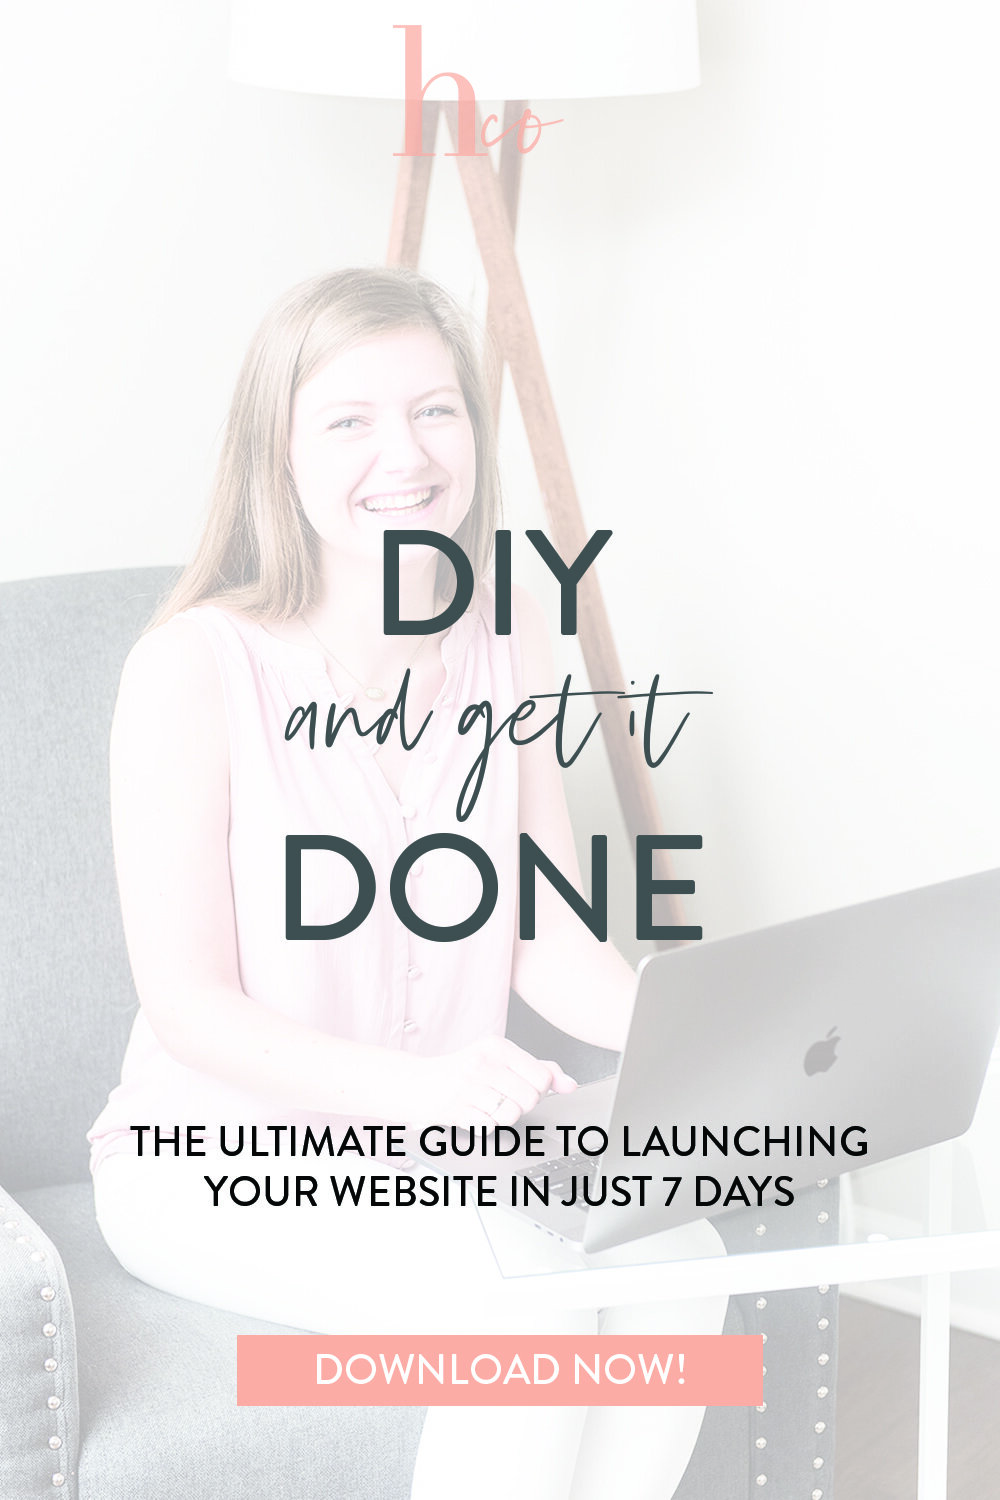 DIY and get it done - graphic.jpg